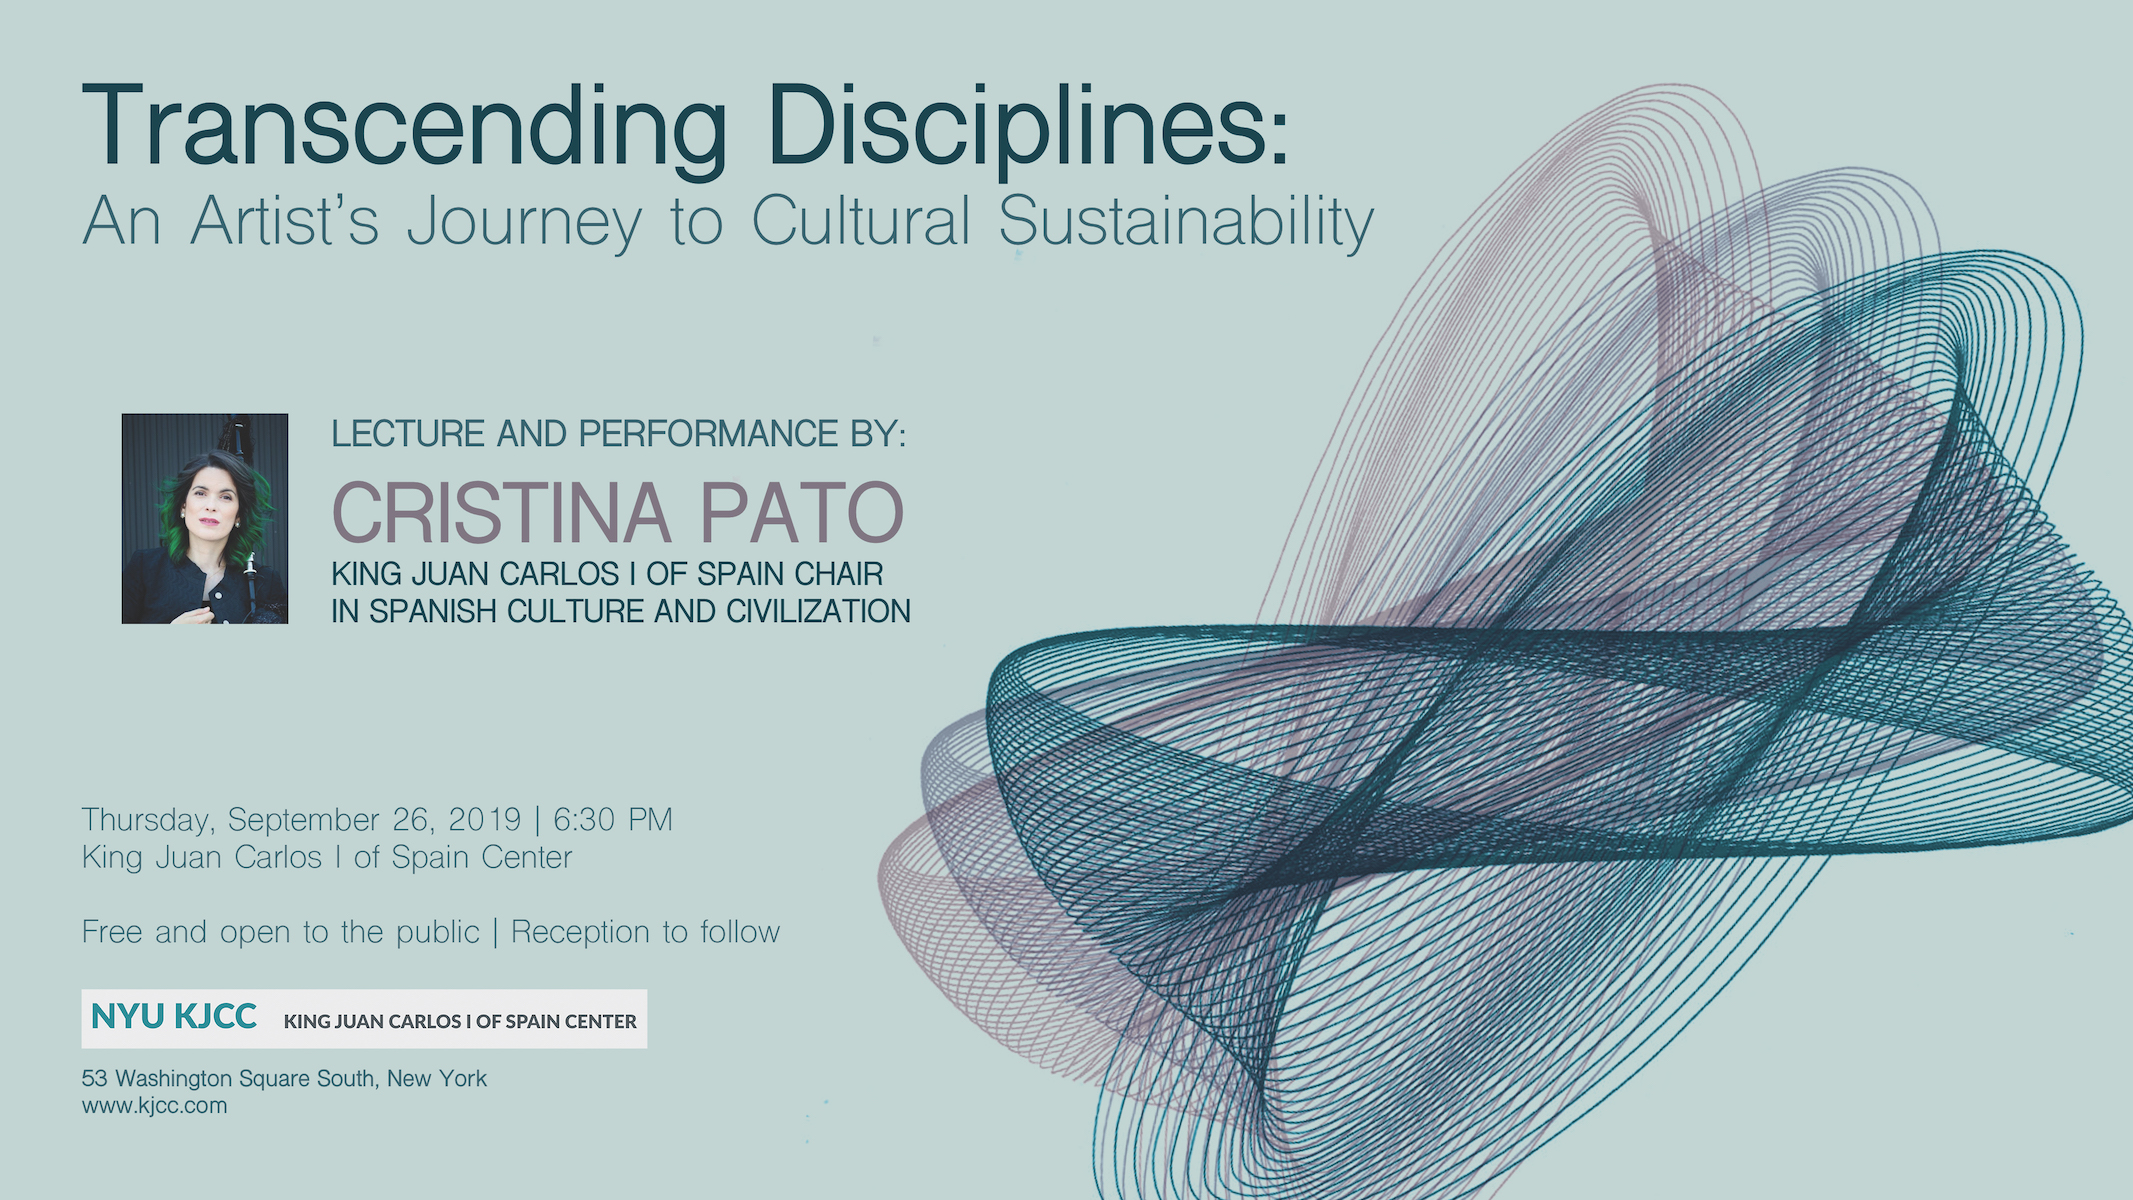 Transcending Disciplines: An Artist's Journey to Cultural Sustainability – KJCC at NYU